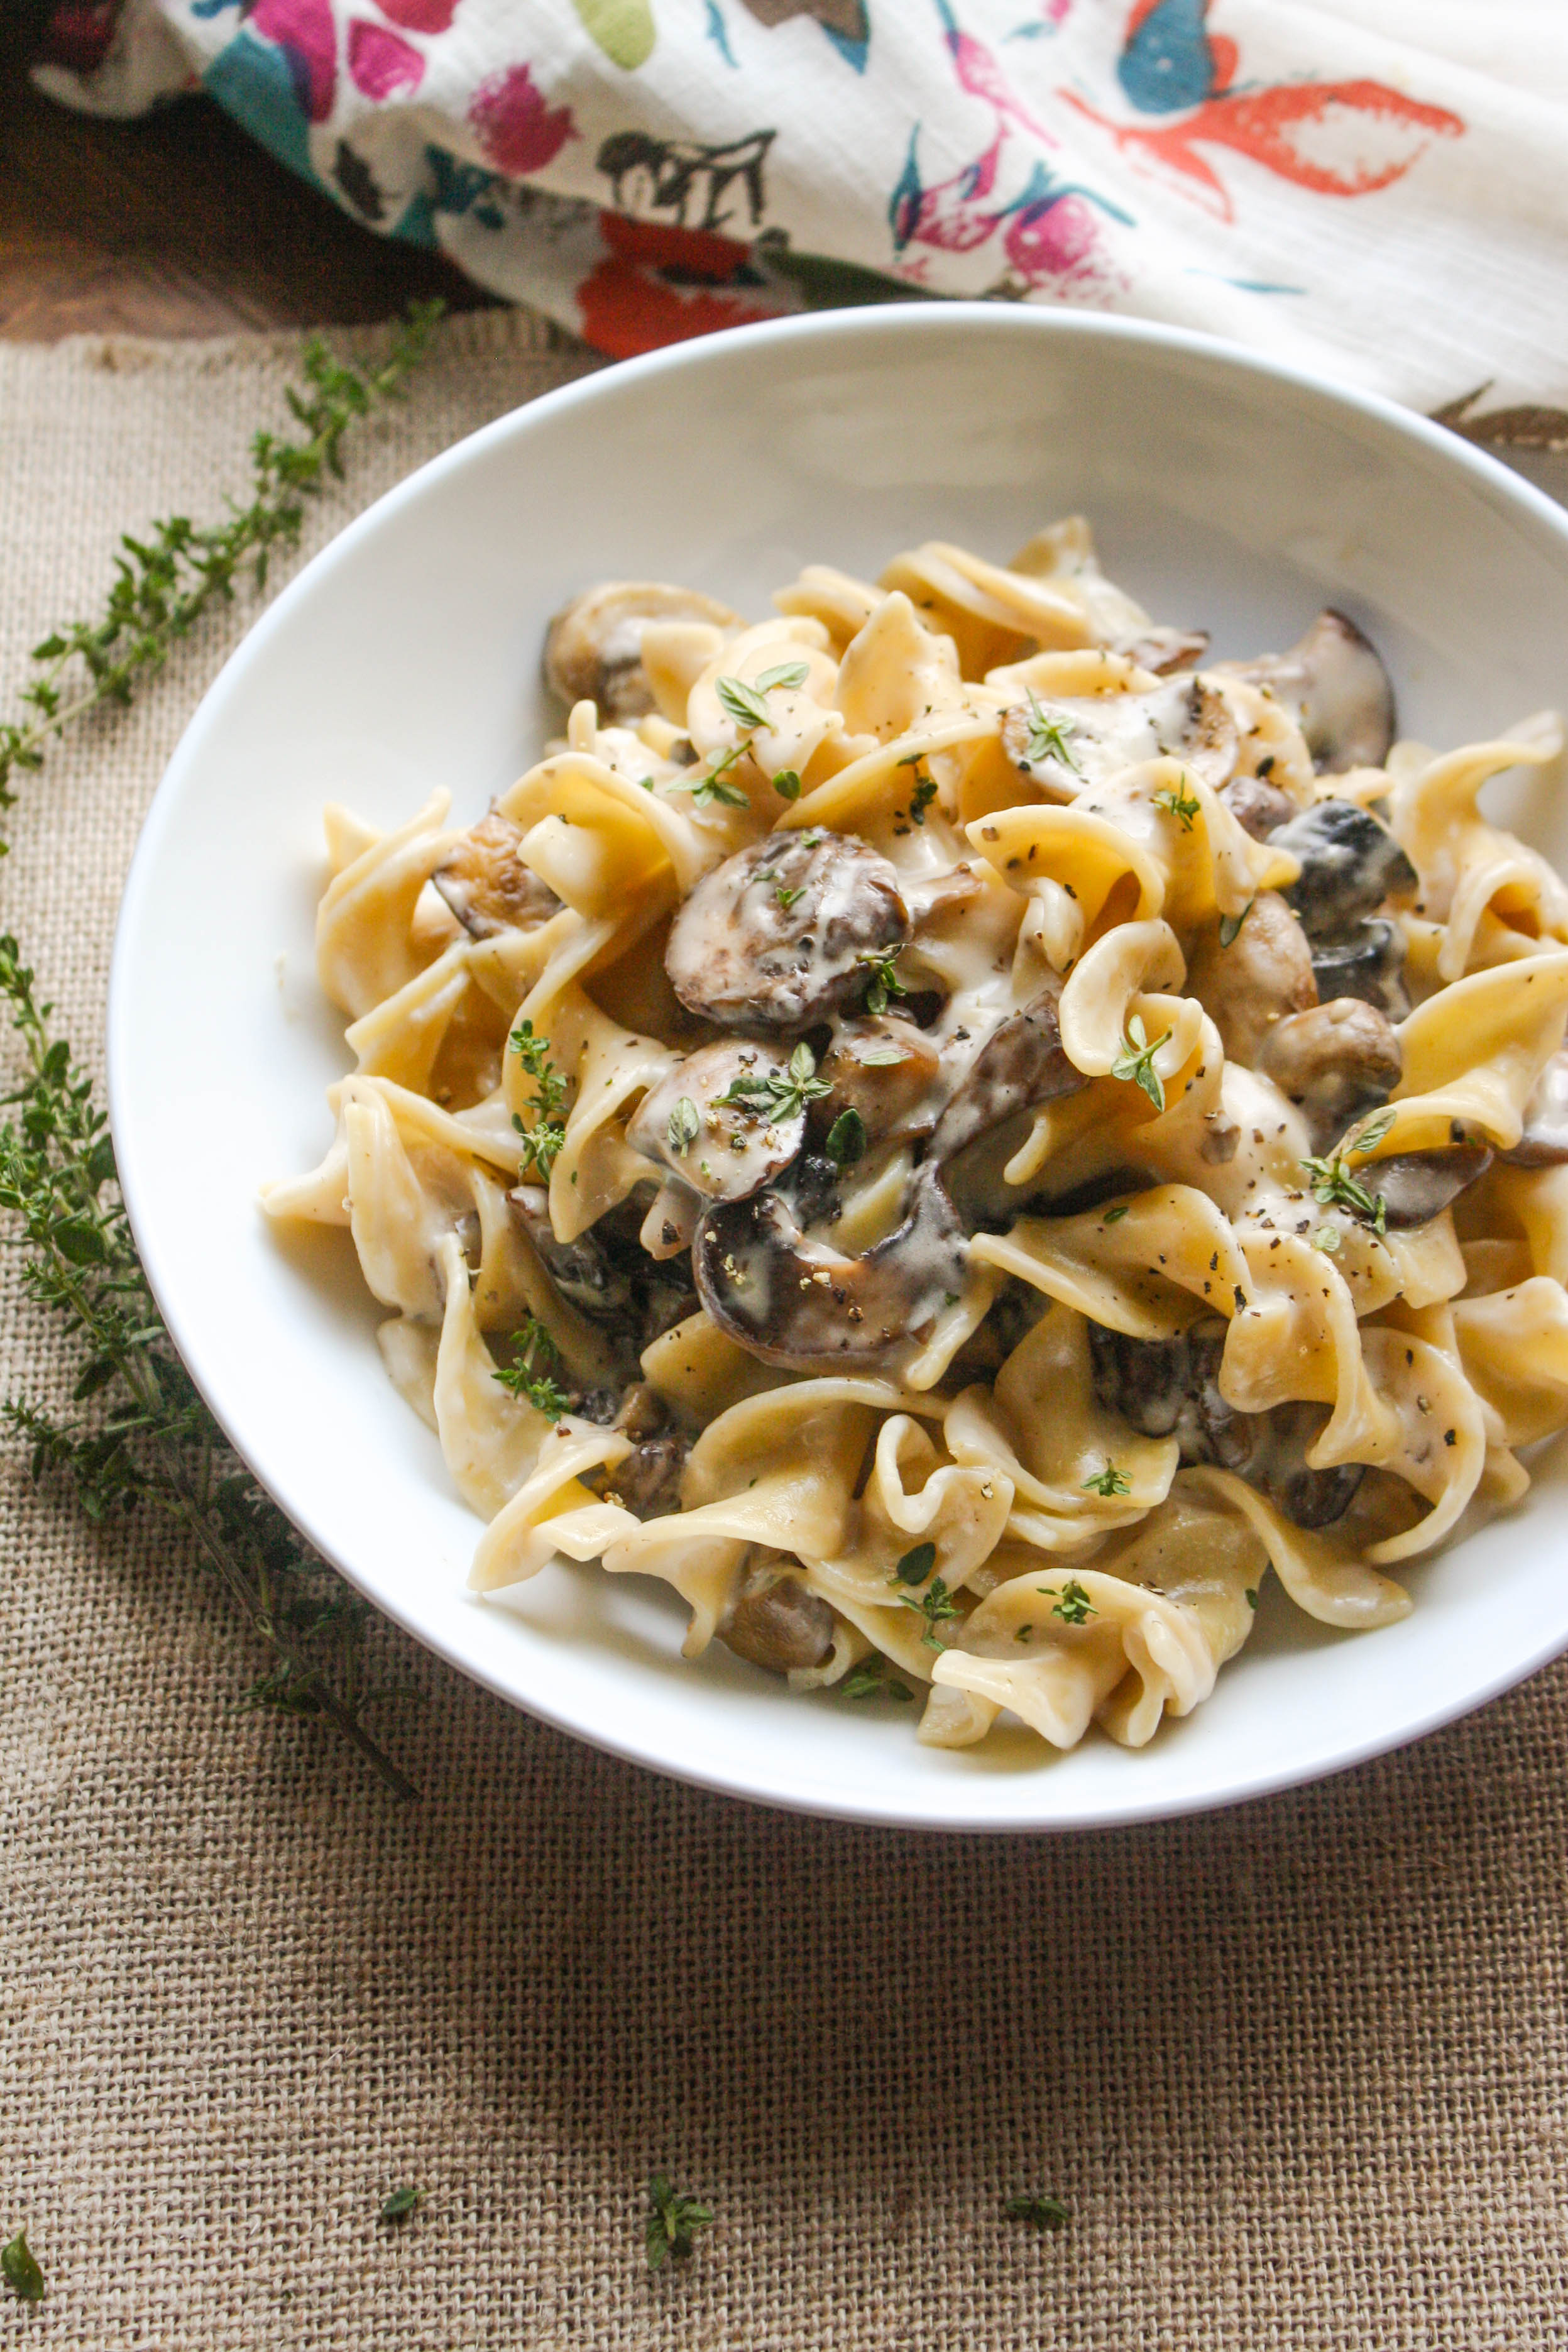 Mushroom Stroganoff is a flavorful and comforting meal perfect on a chilly night. You'll love this classic noodle dish with a twist!